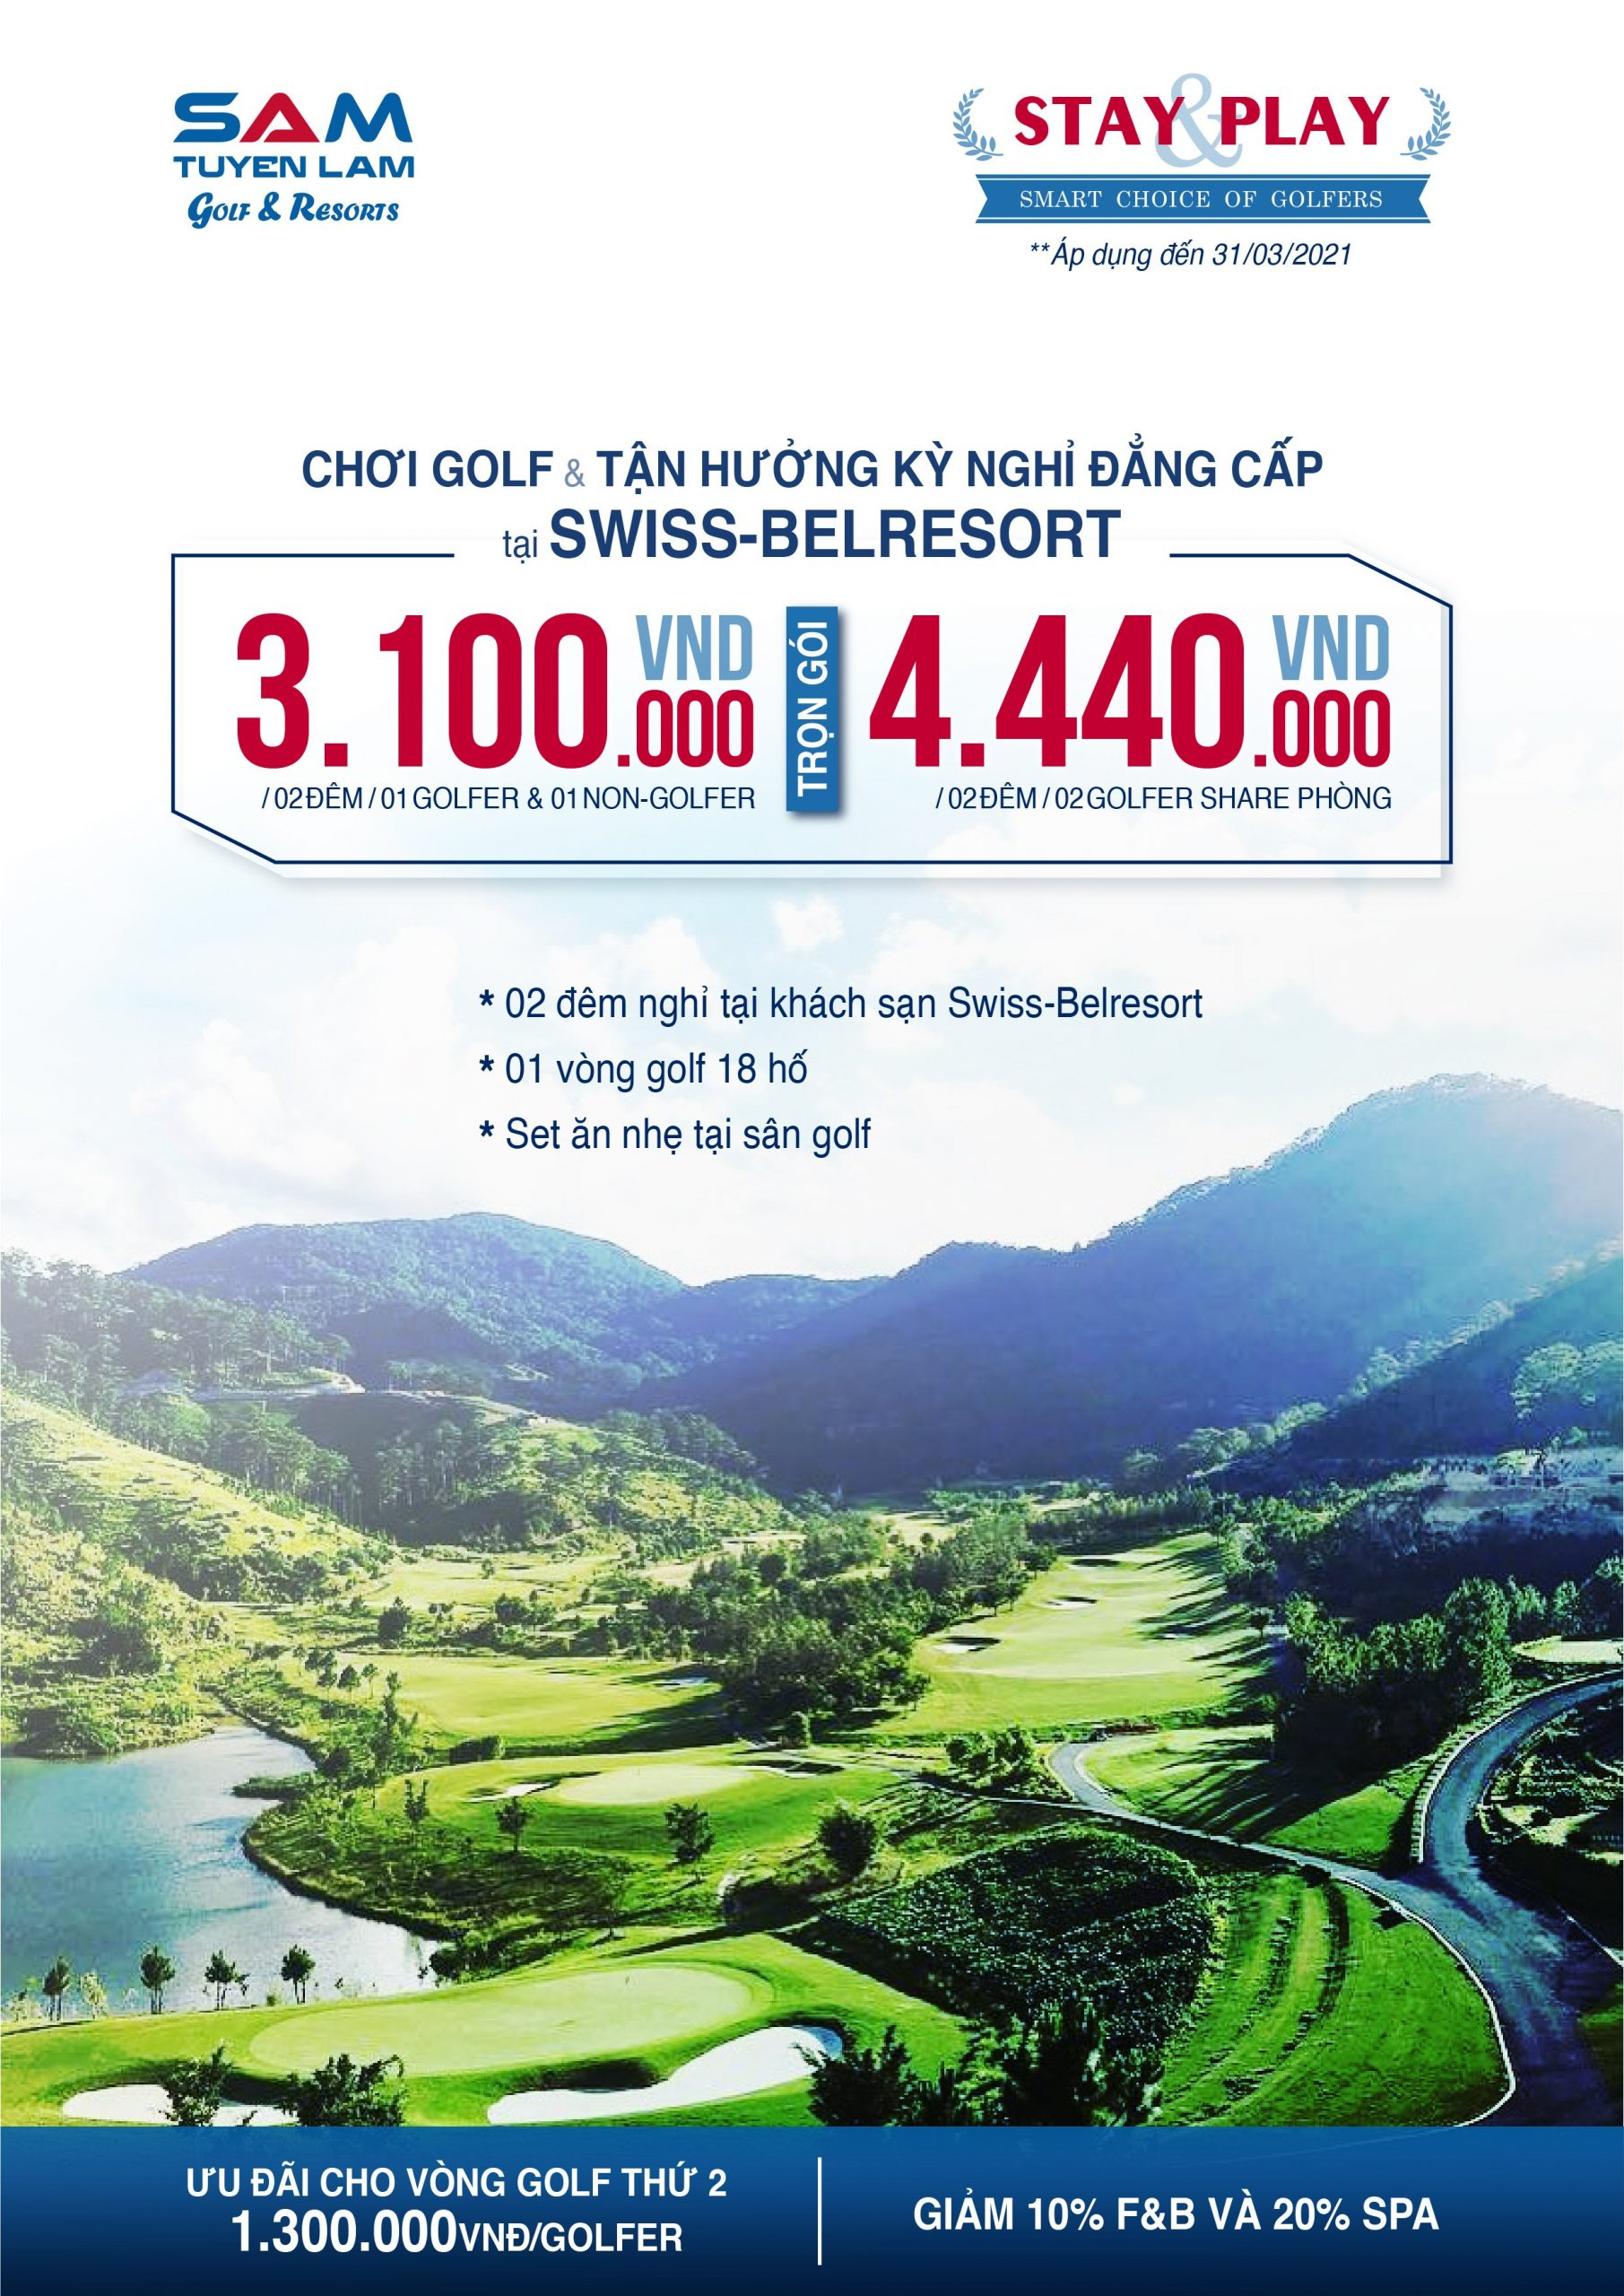 Promotion in March: Stay and Play Sam Tuyen Lam Golf 3D2N